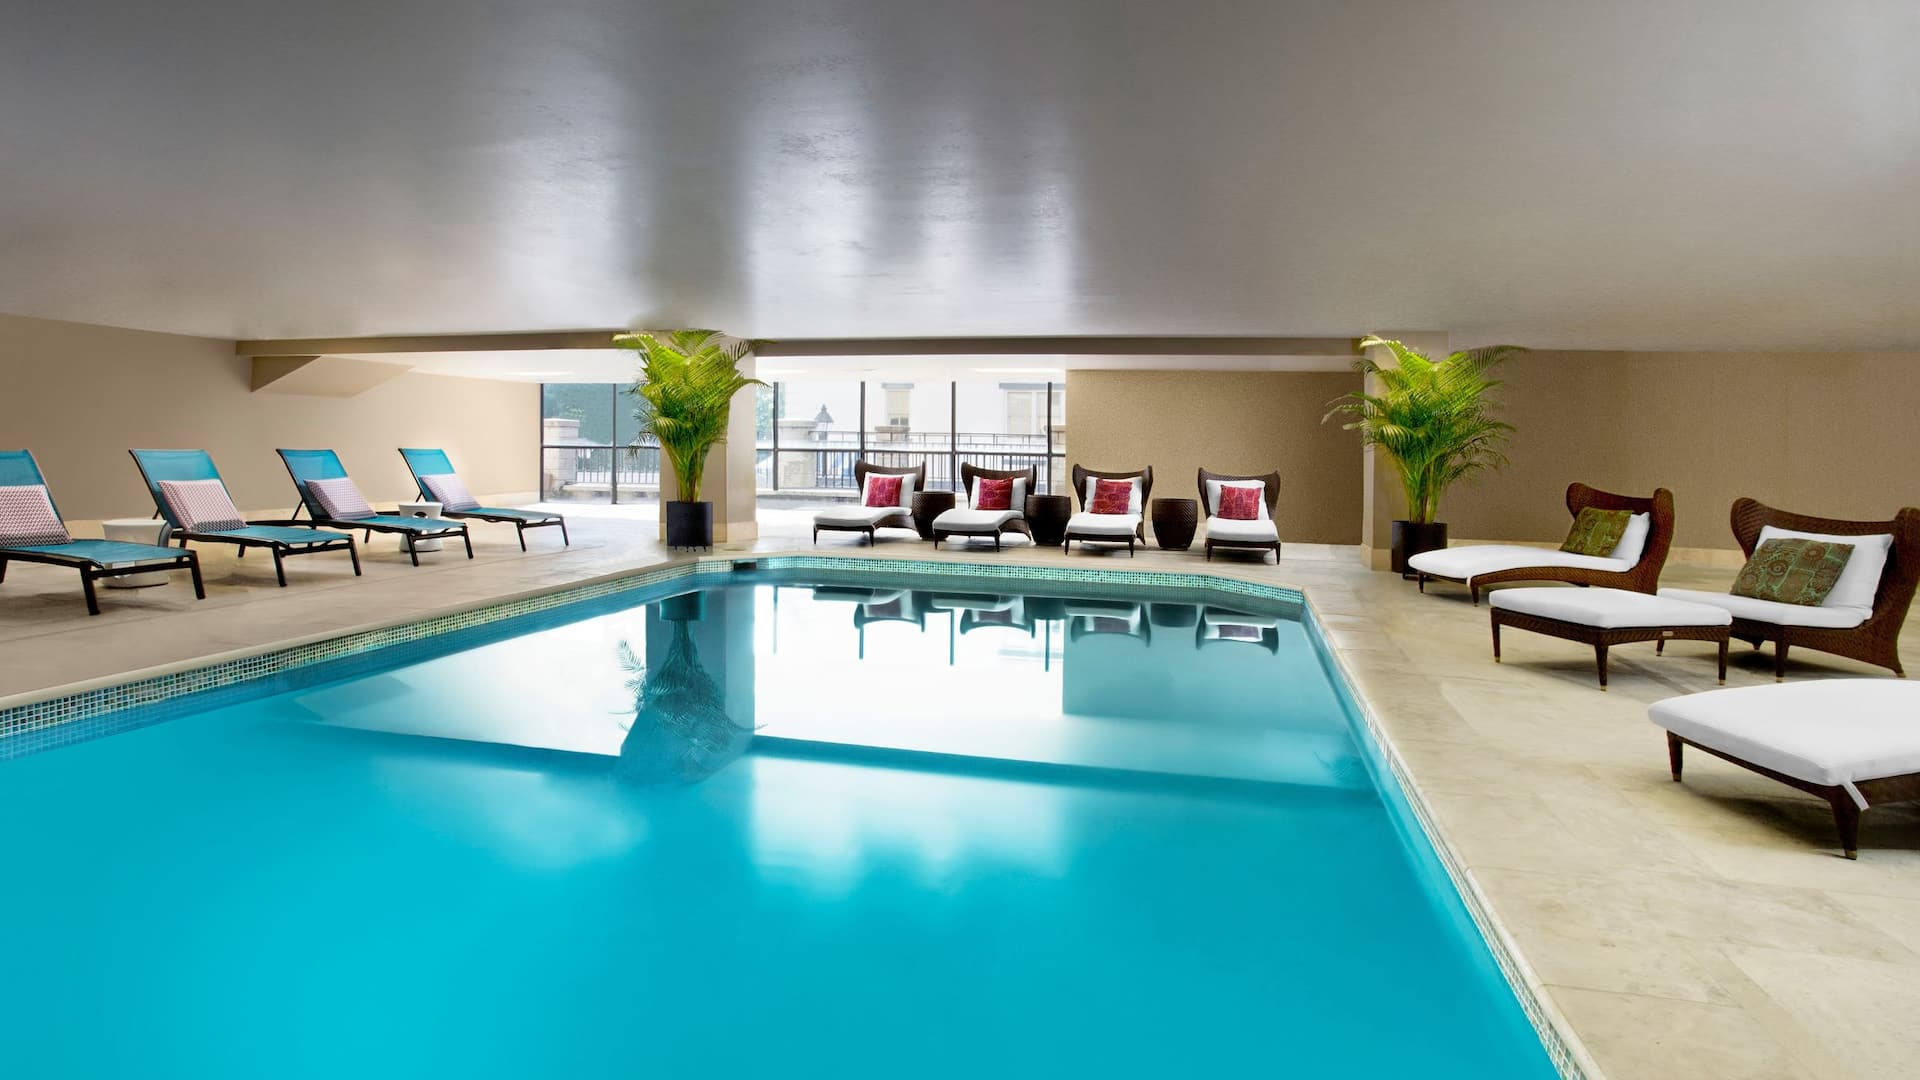 Hyatt Regency Savannah Indoor Pool